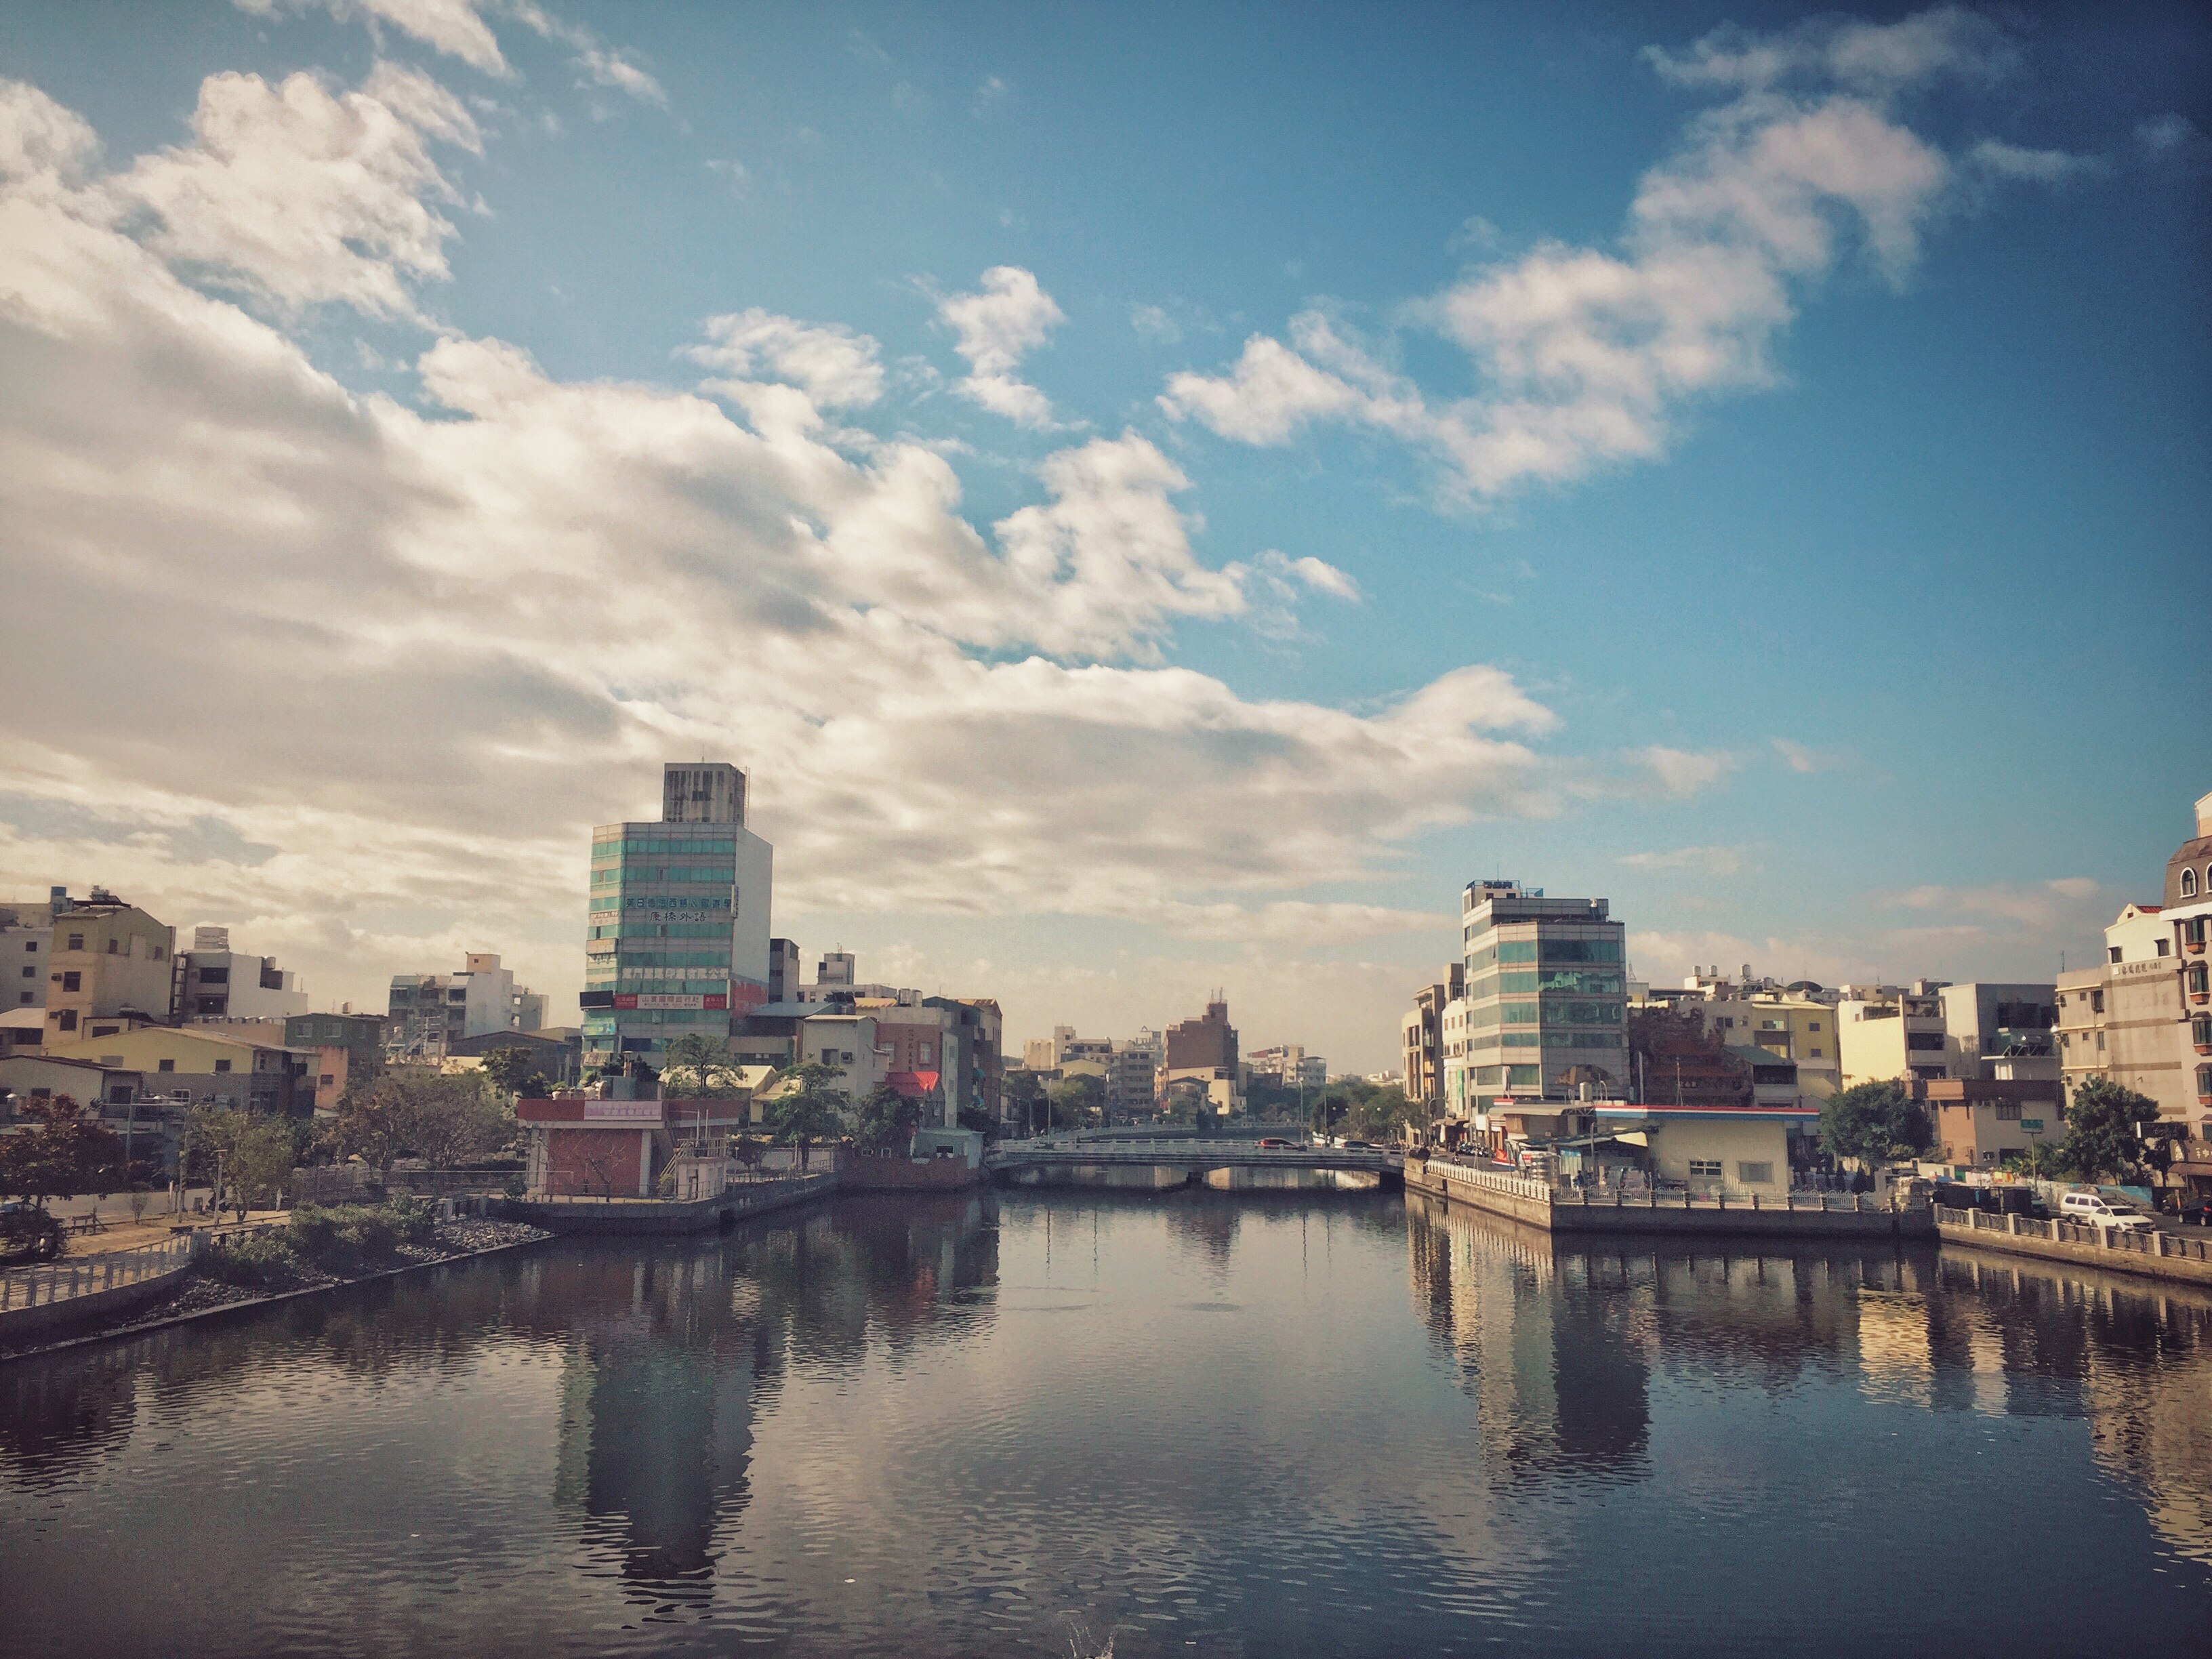 45/365 Hello! Tainan, Rural, Sky, Sunset, River, HQ Photo